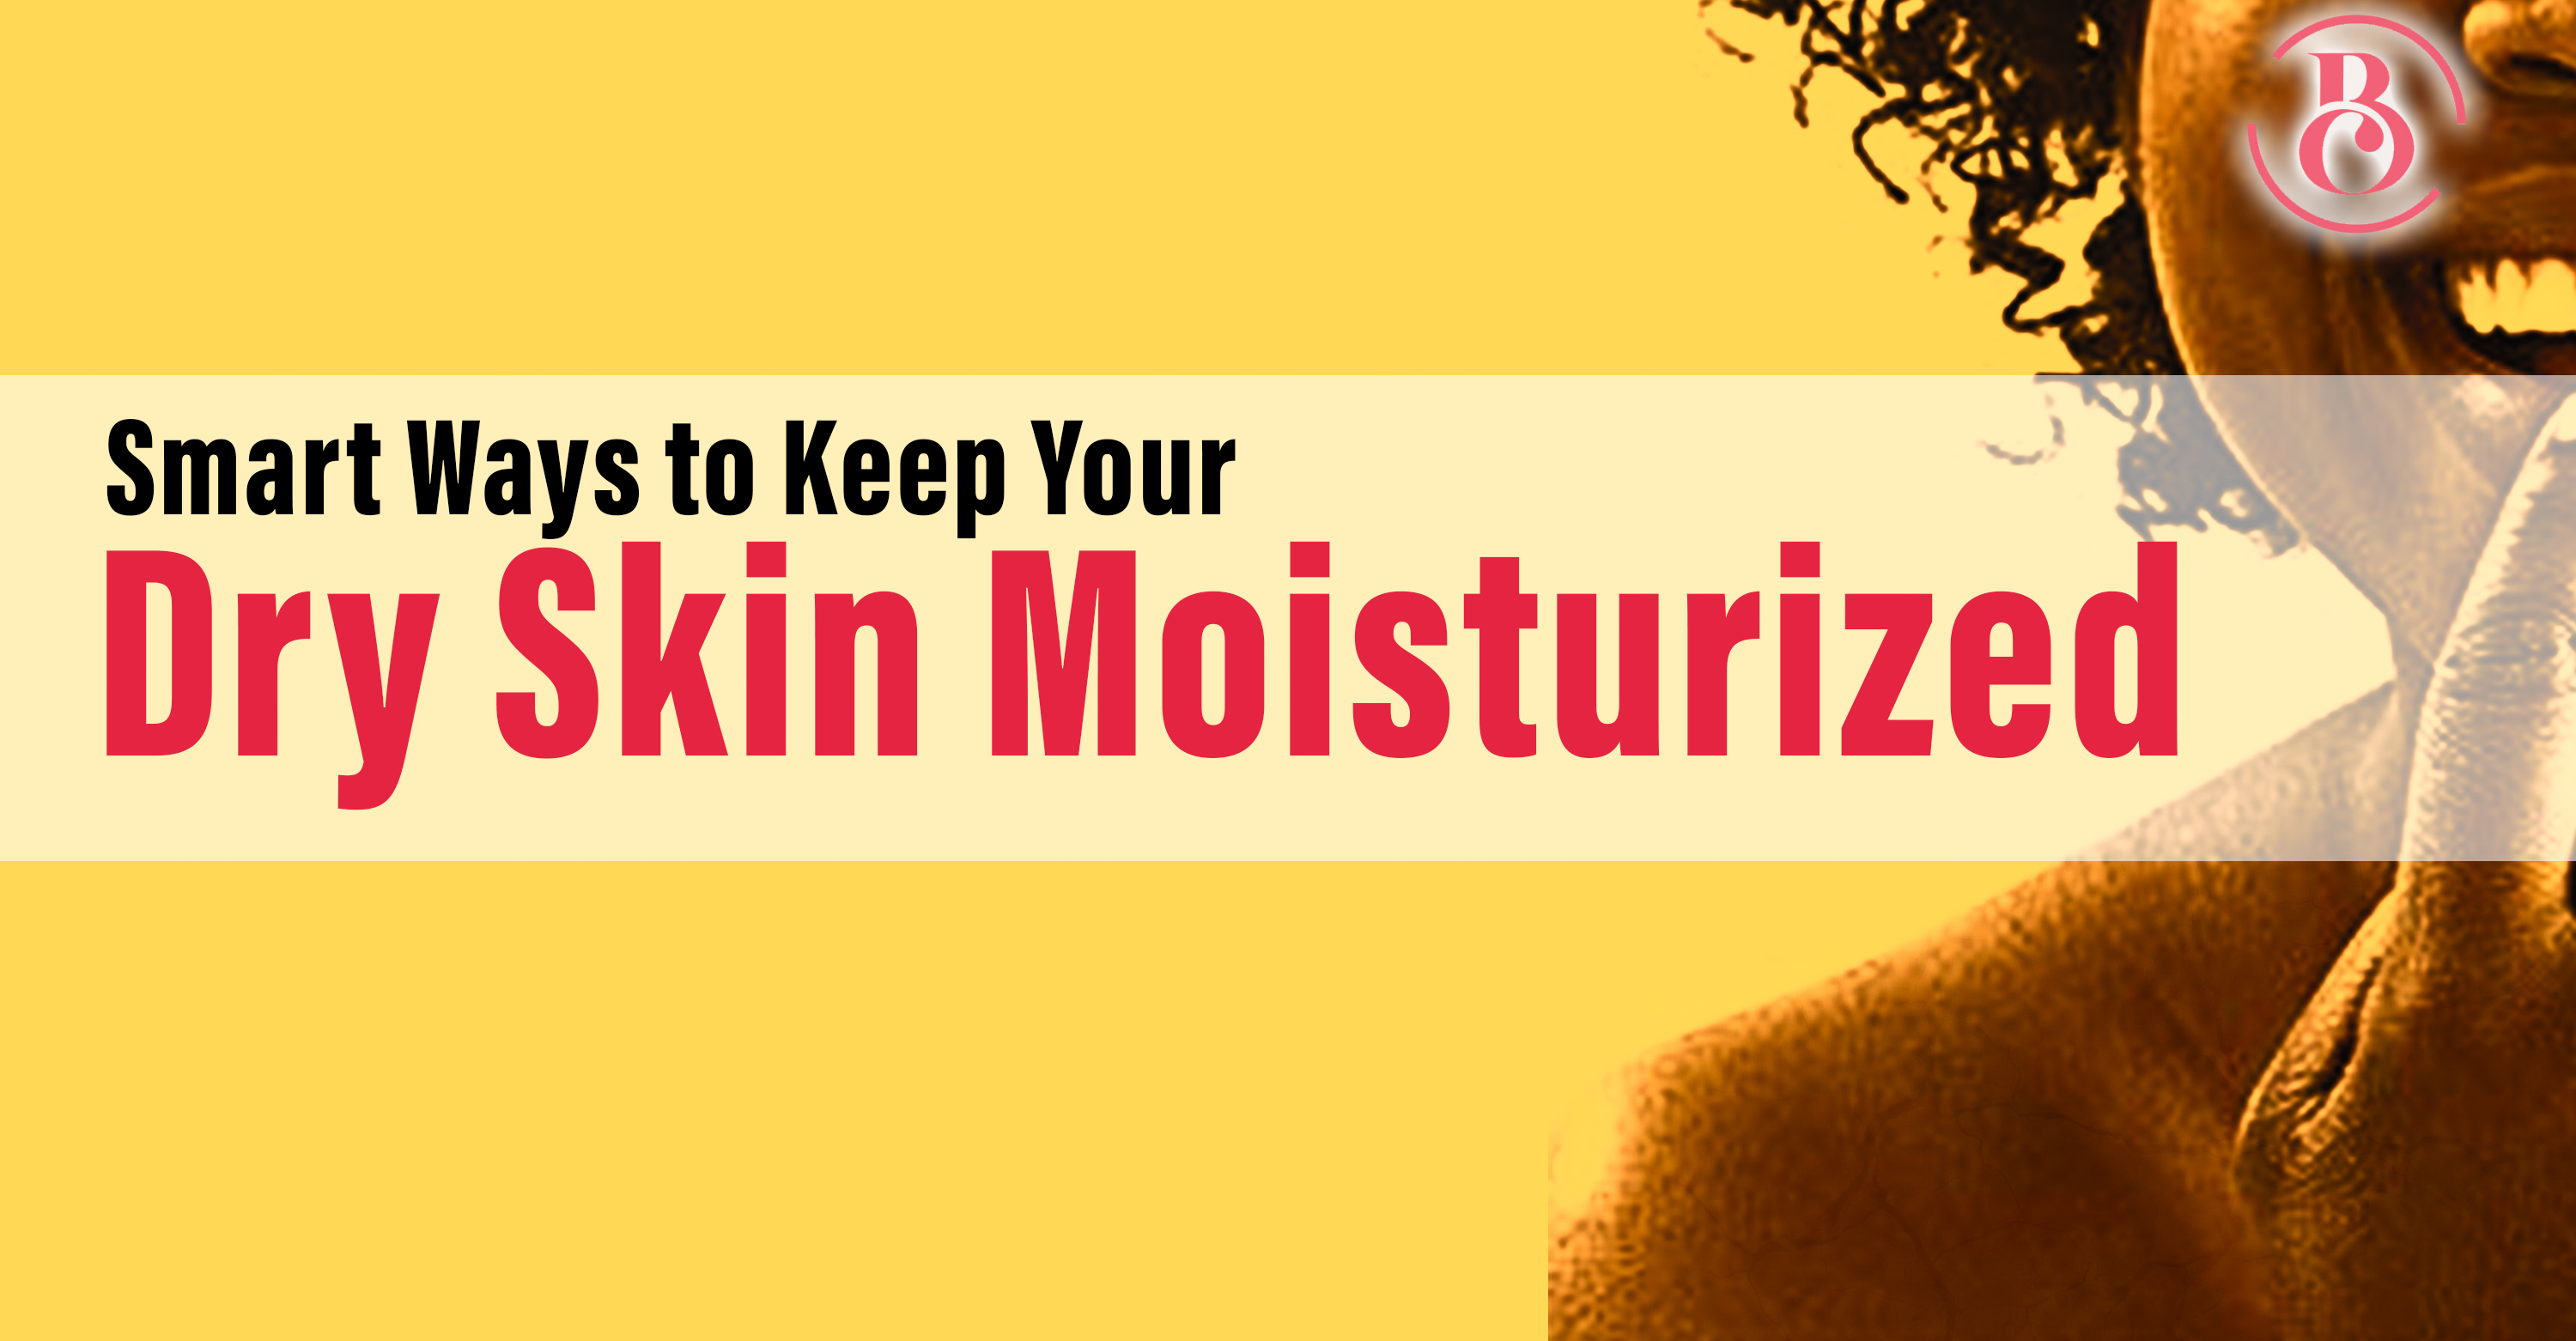 7 Smart Ways to Keep Your Dry Skin Moisturized